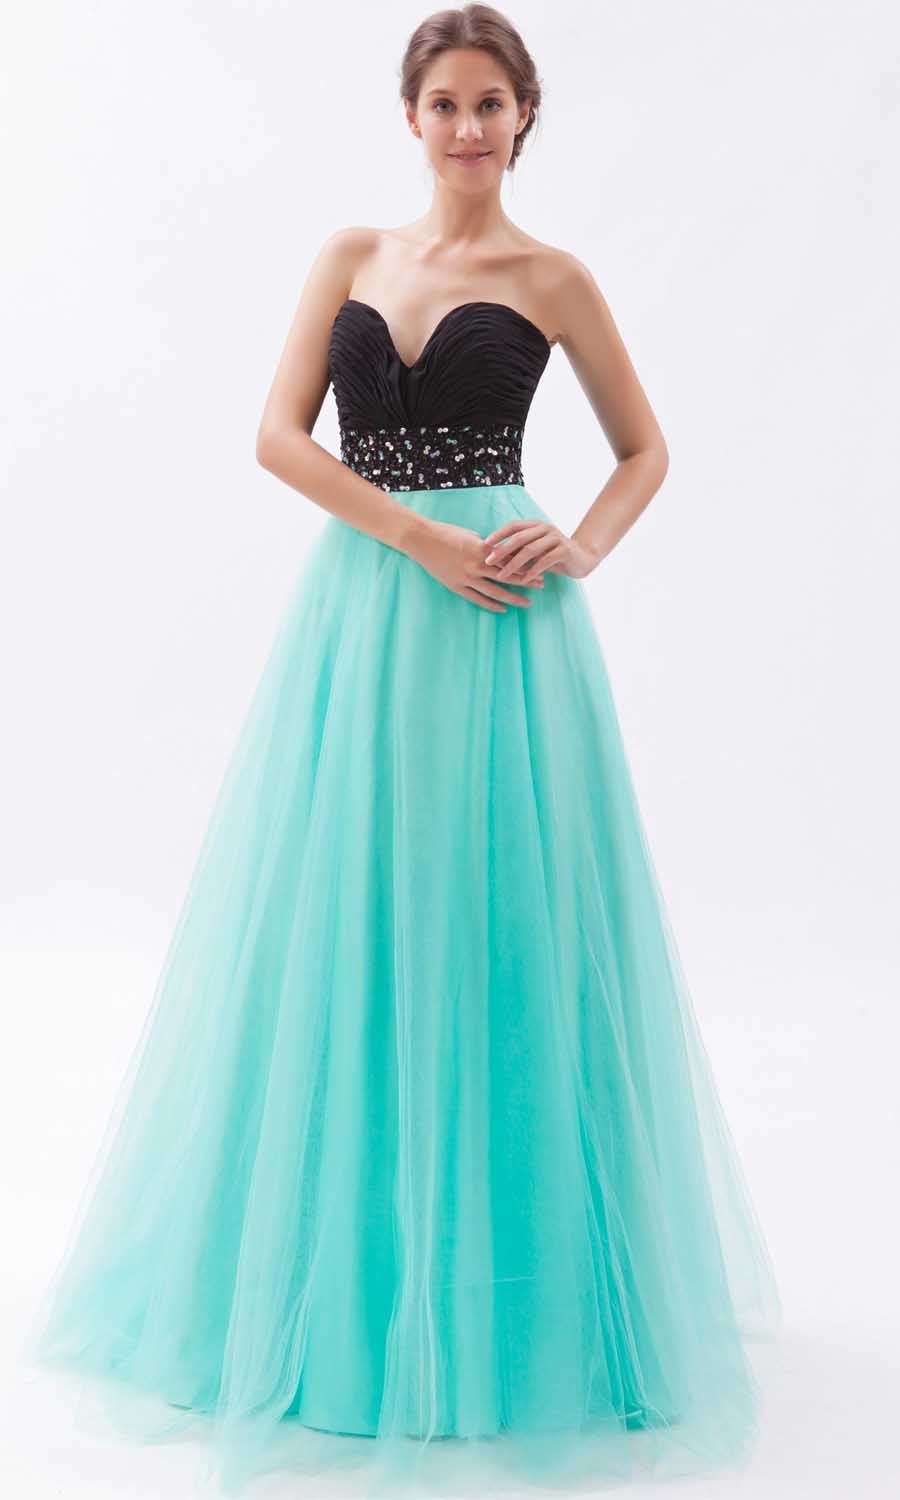 Black And Teal Organza Long Princess Prom Dresses KSP264 [KSP264 ...